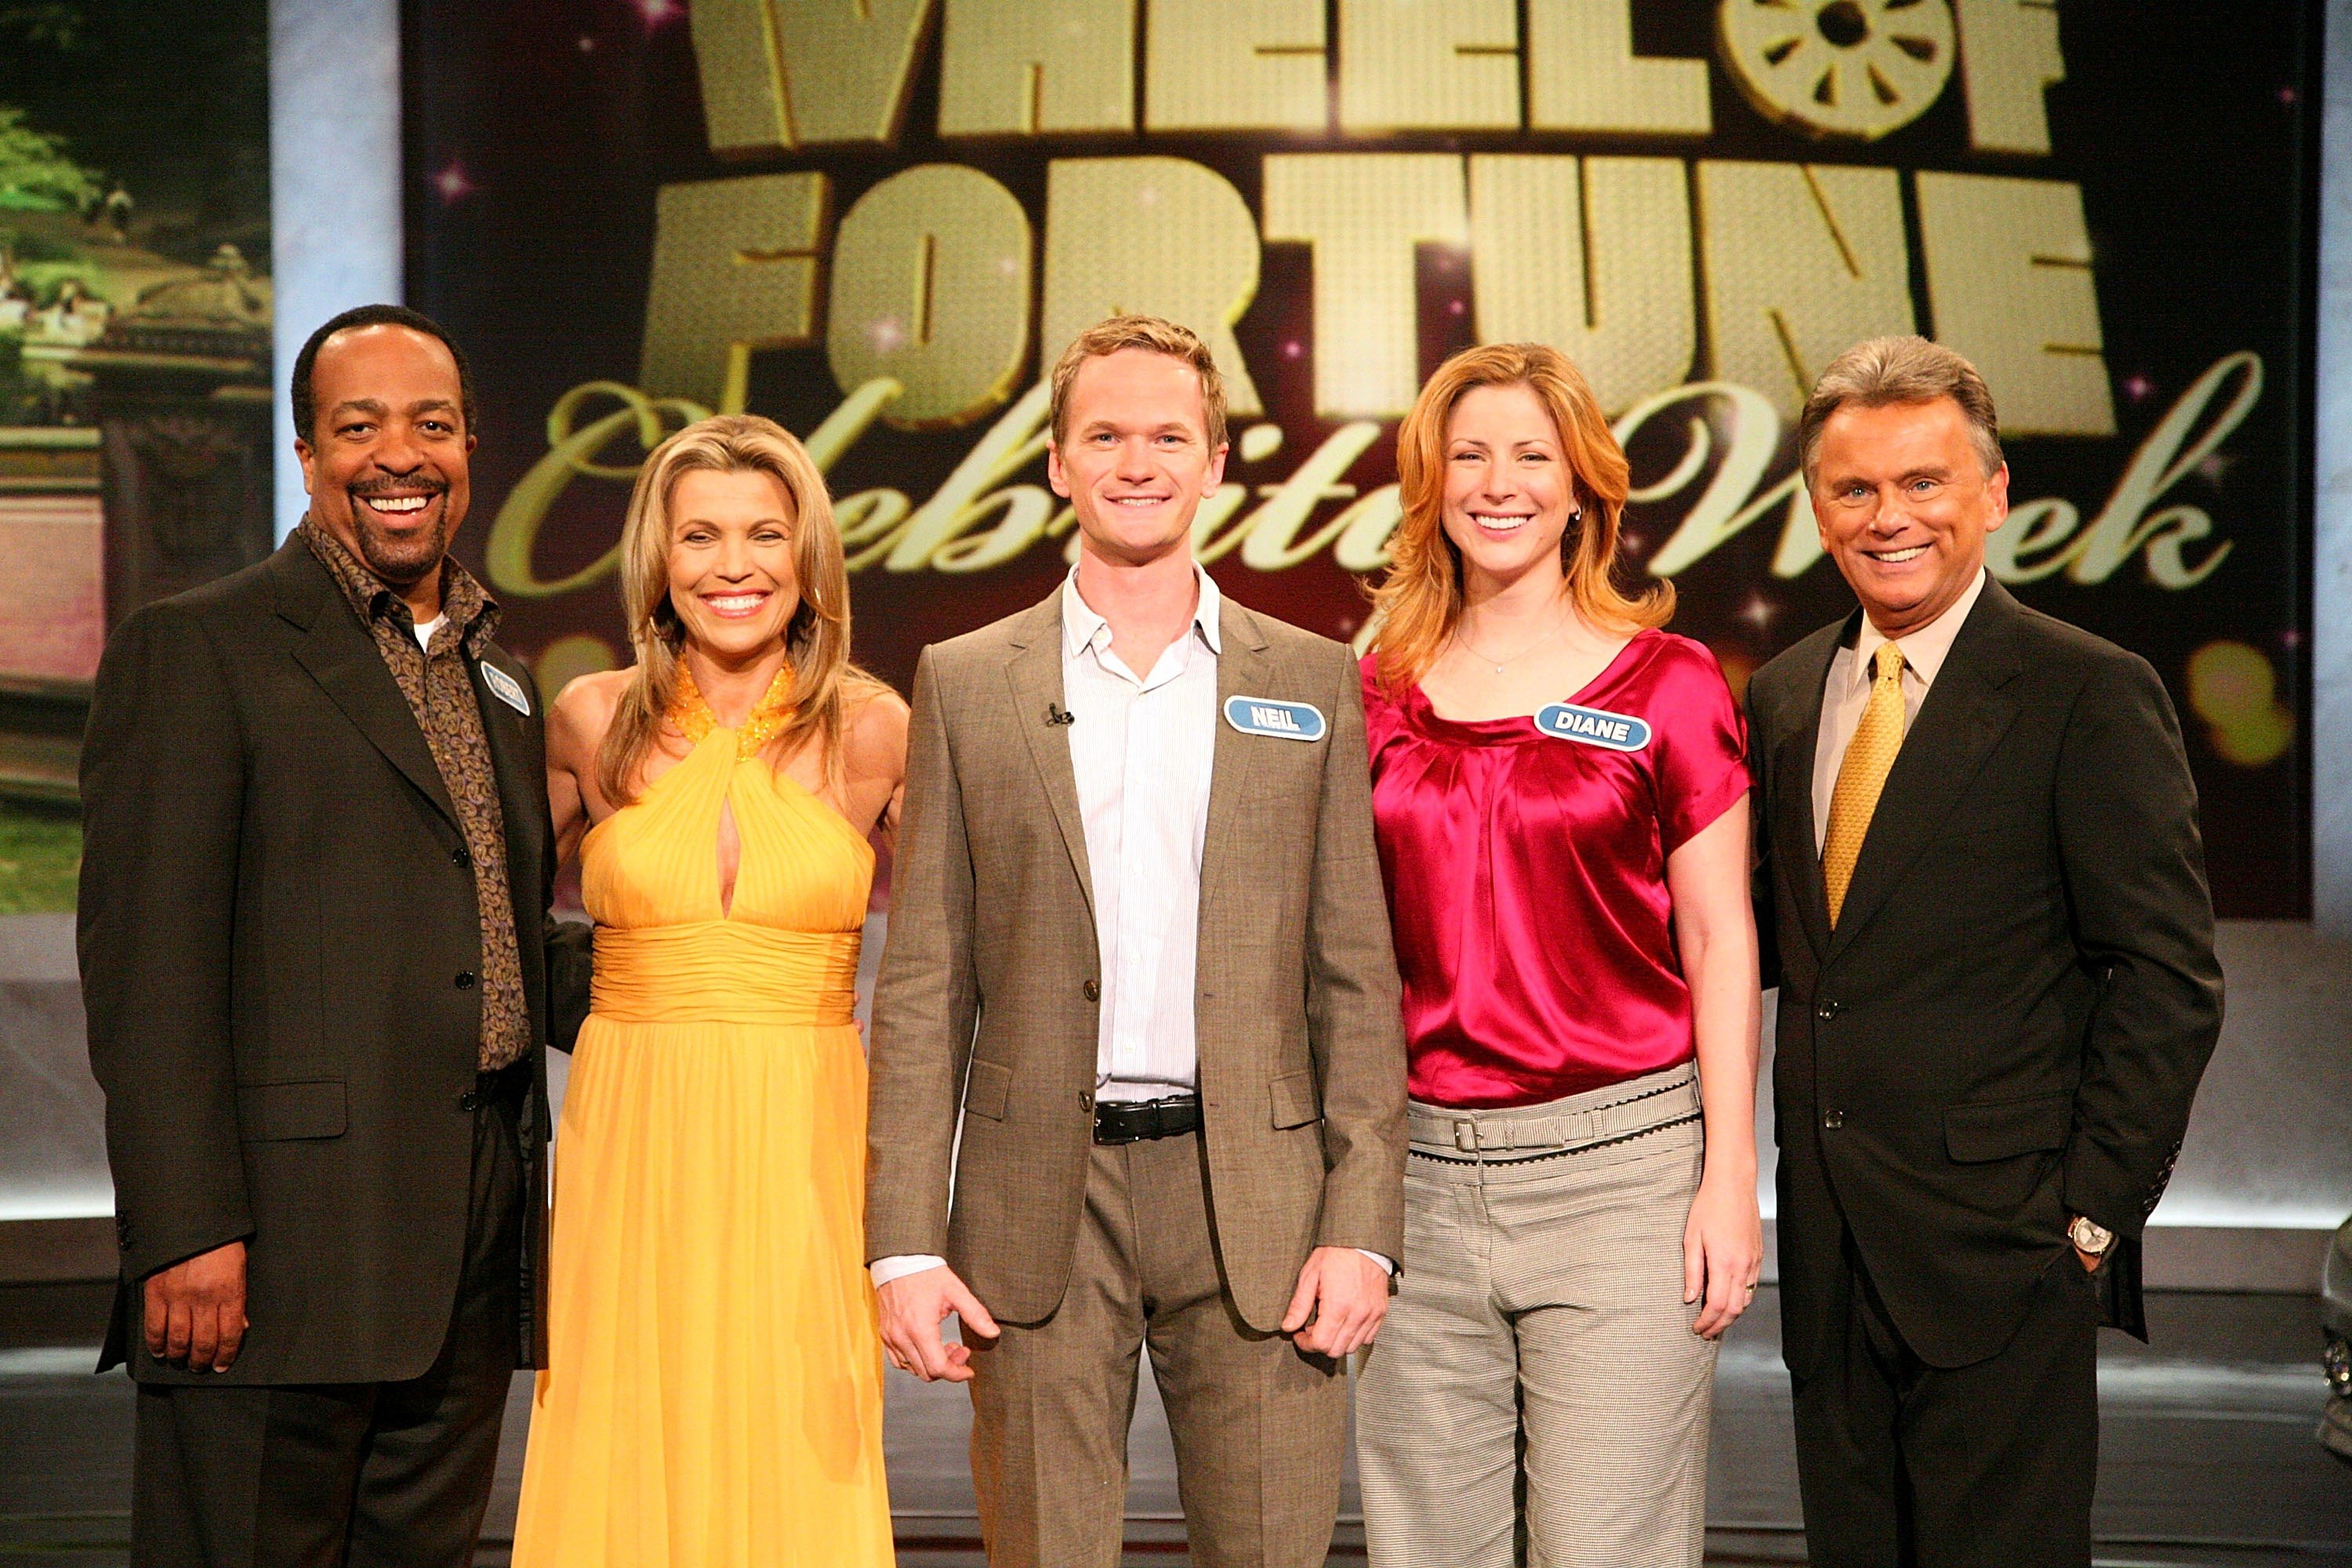 'Wheel Of Fortune' Celebrity Week Pat Sajak and Vanna White